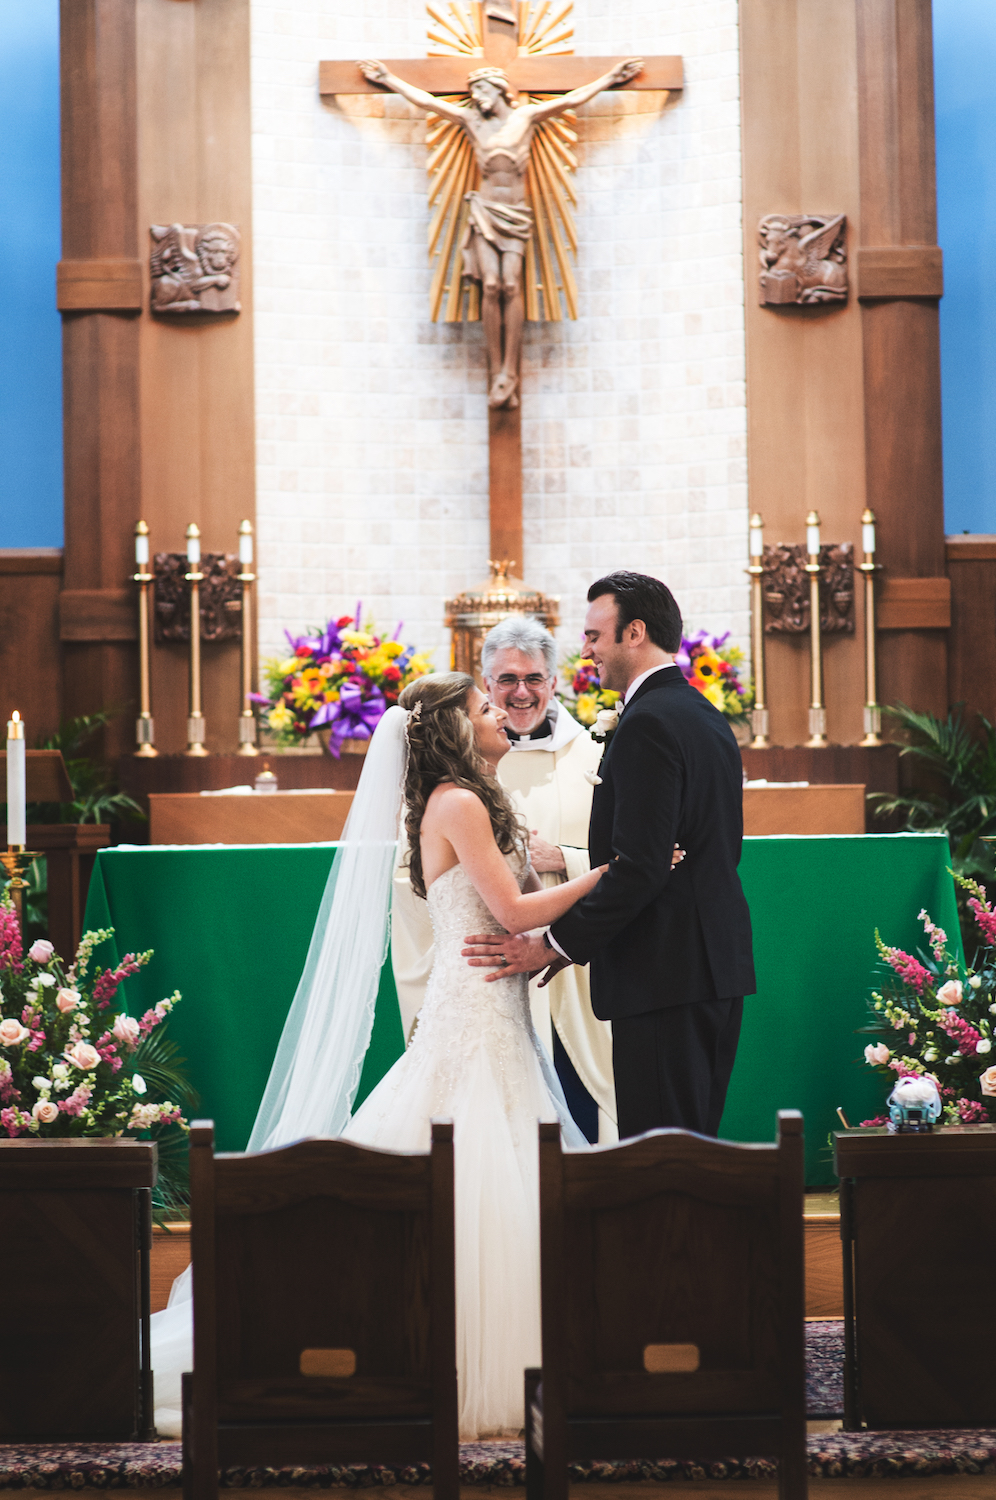 tricia&anthony-laughing-at-altar-nj-wedding-photography